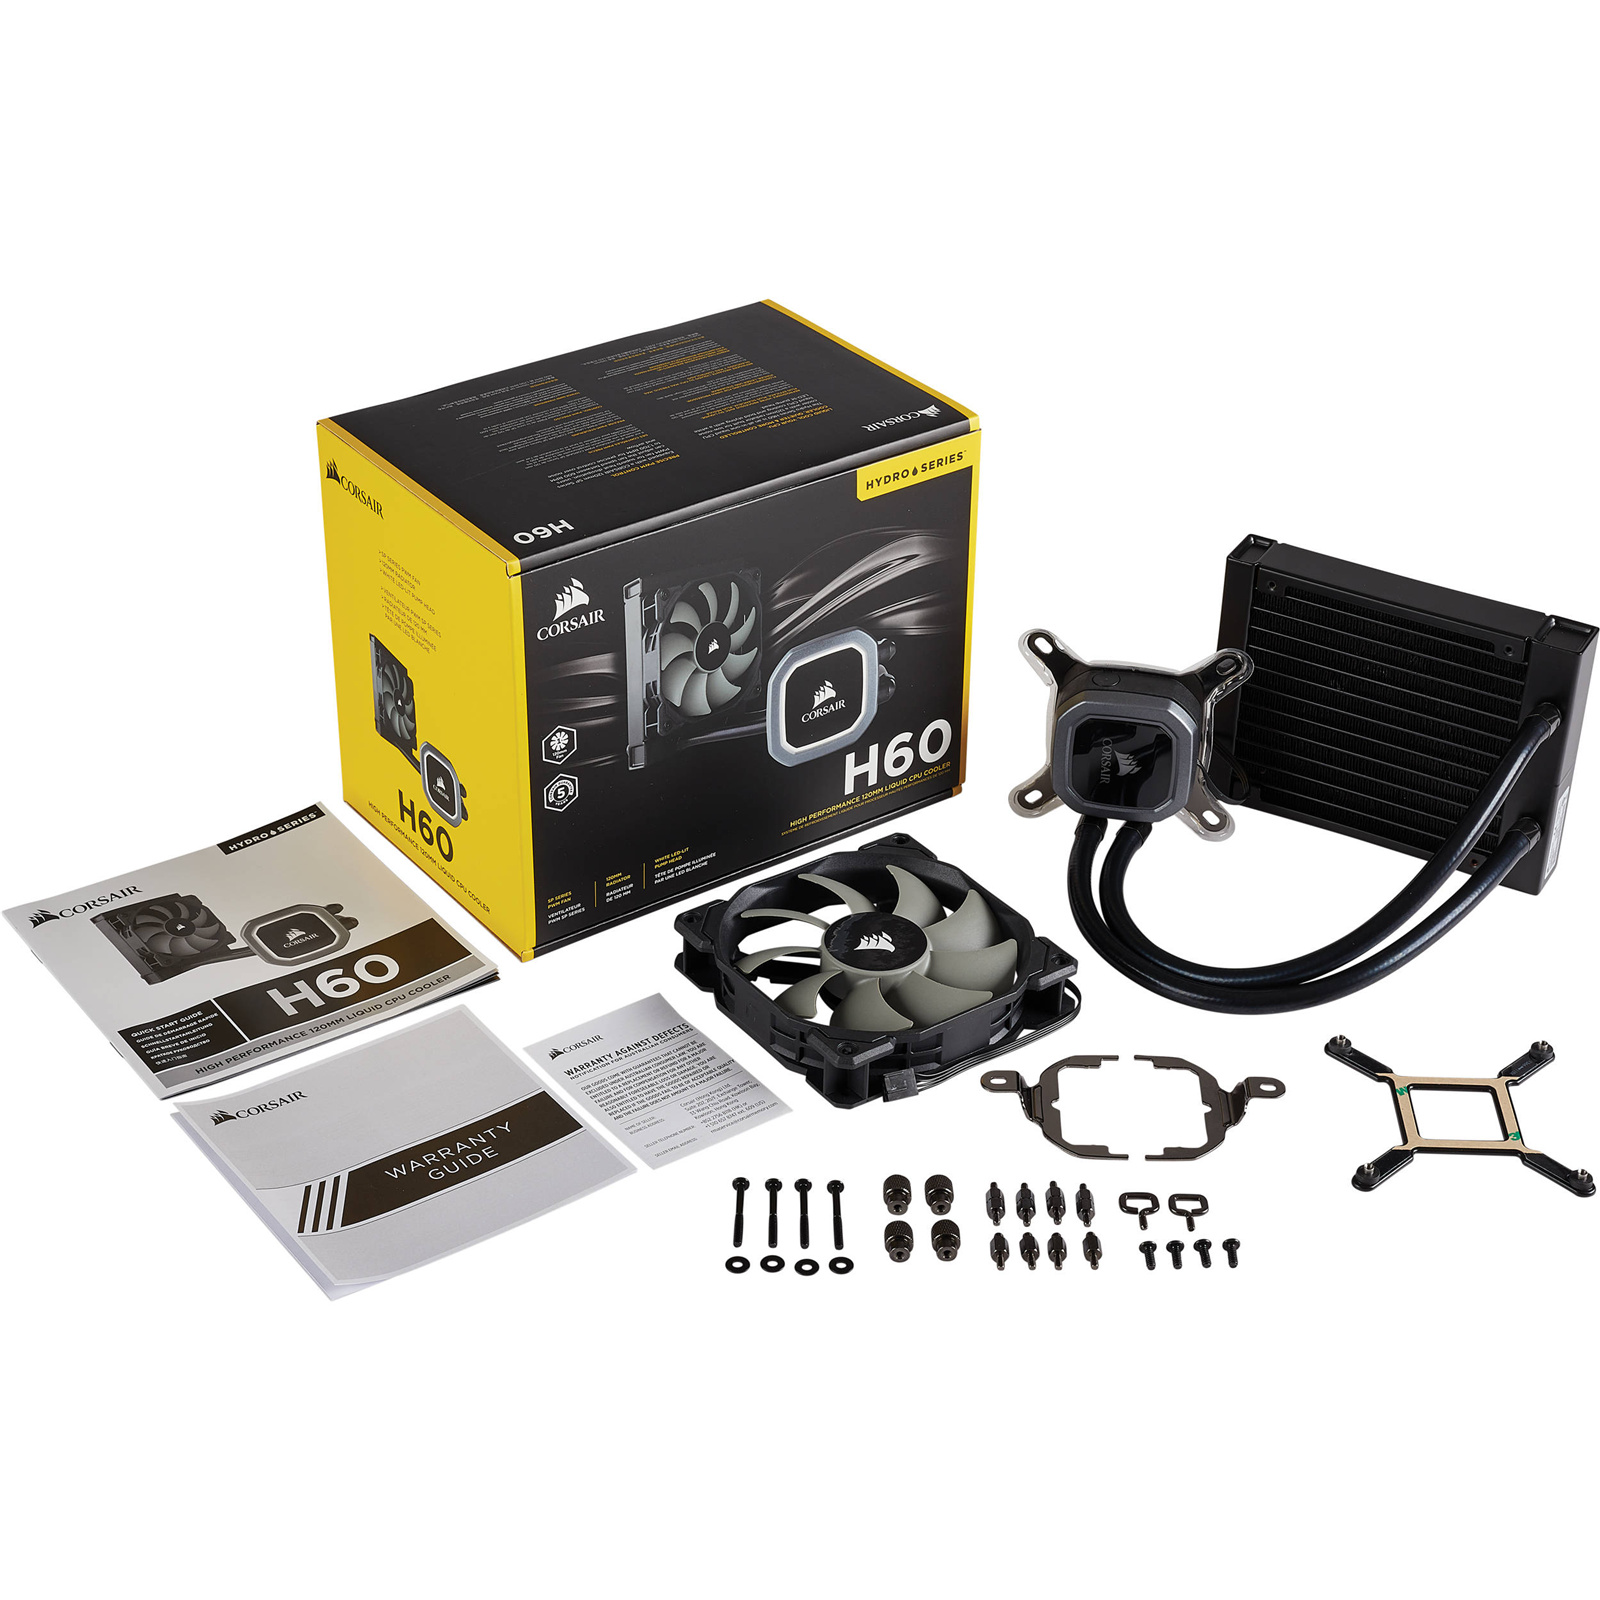 Buy The Corsair Hydro Series H60 V2 All In One Liquid Cooling With H100i Water Cooler 120mm Radiator And White Led Lit Pump